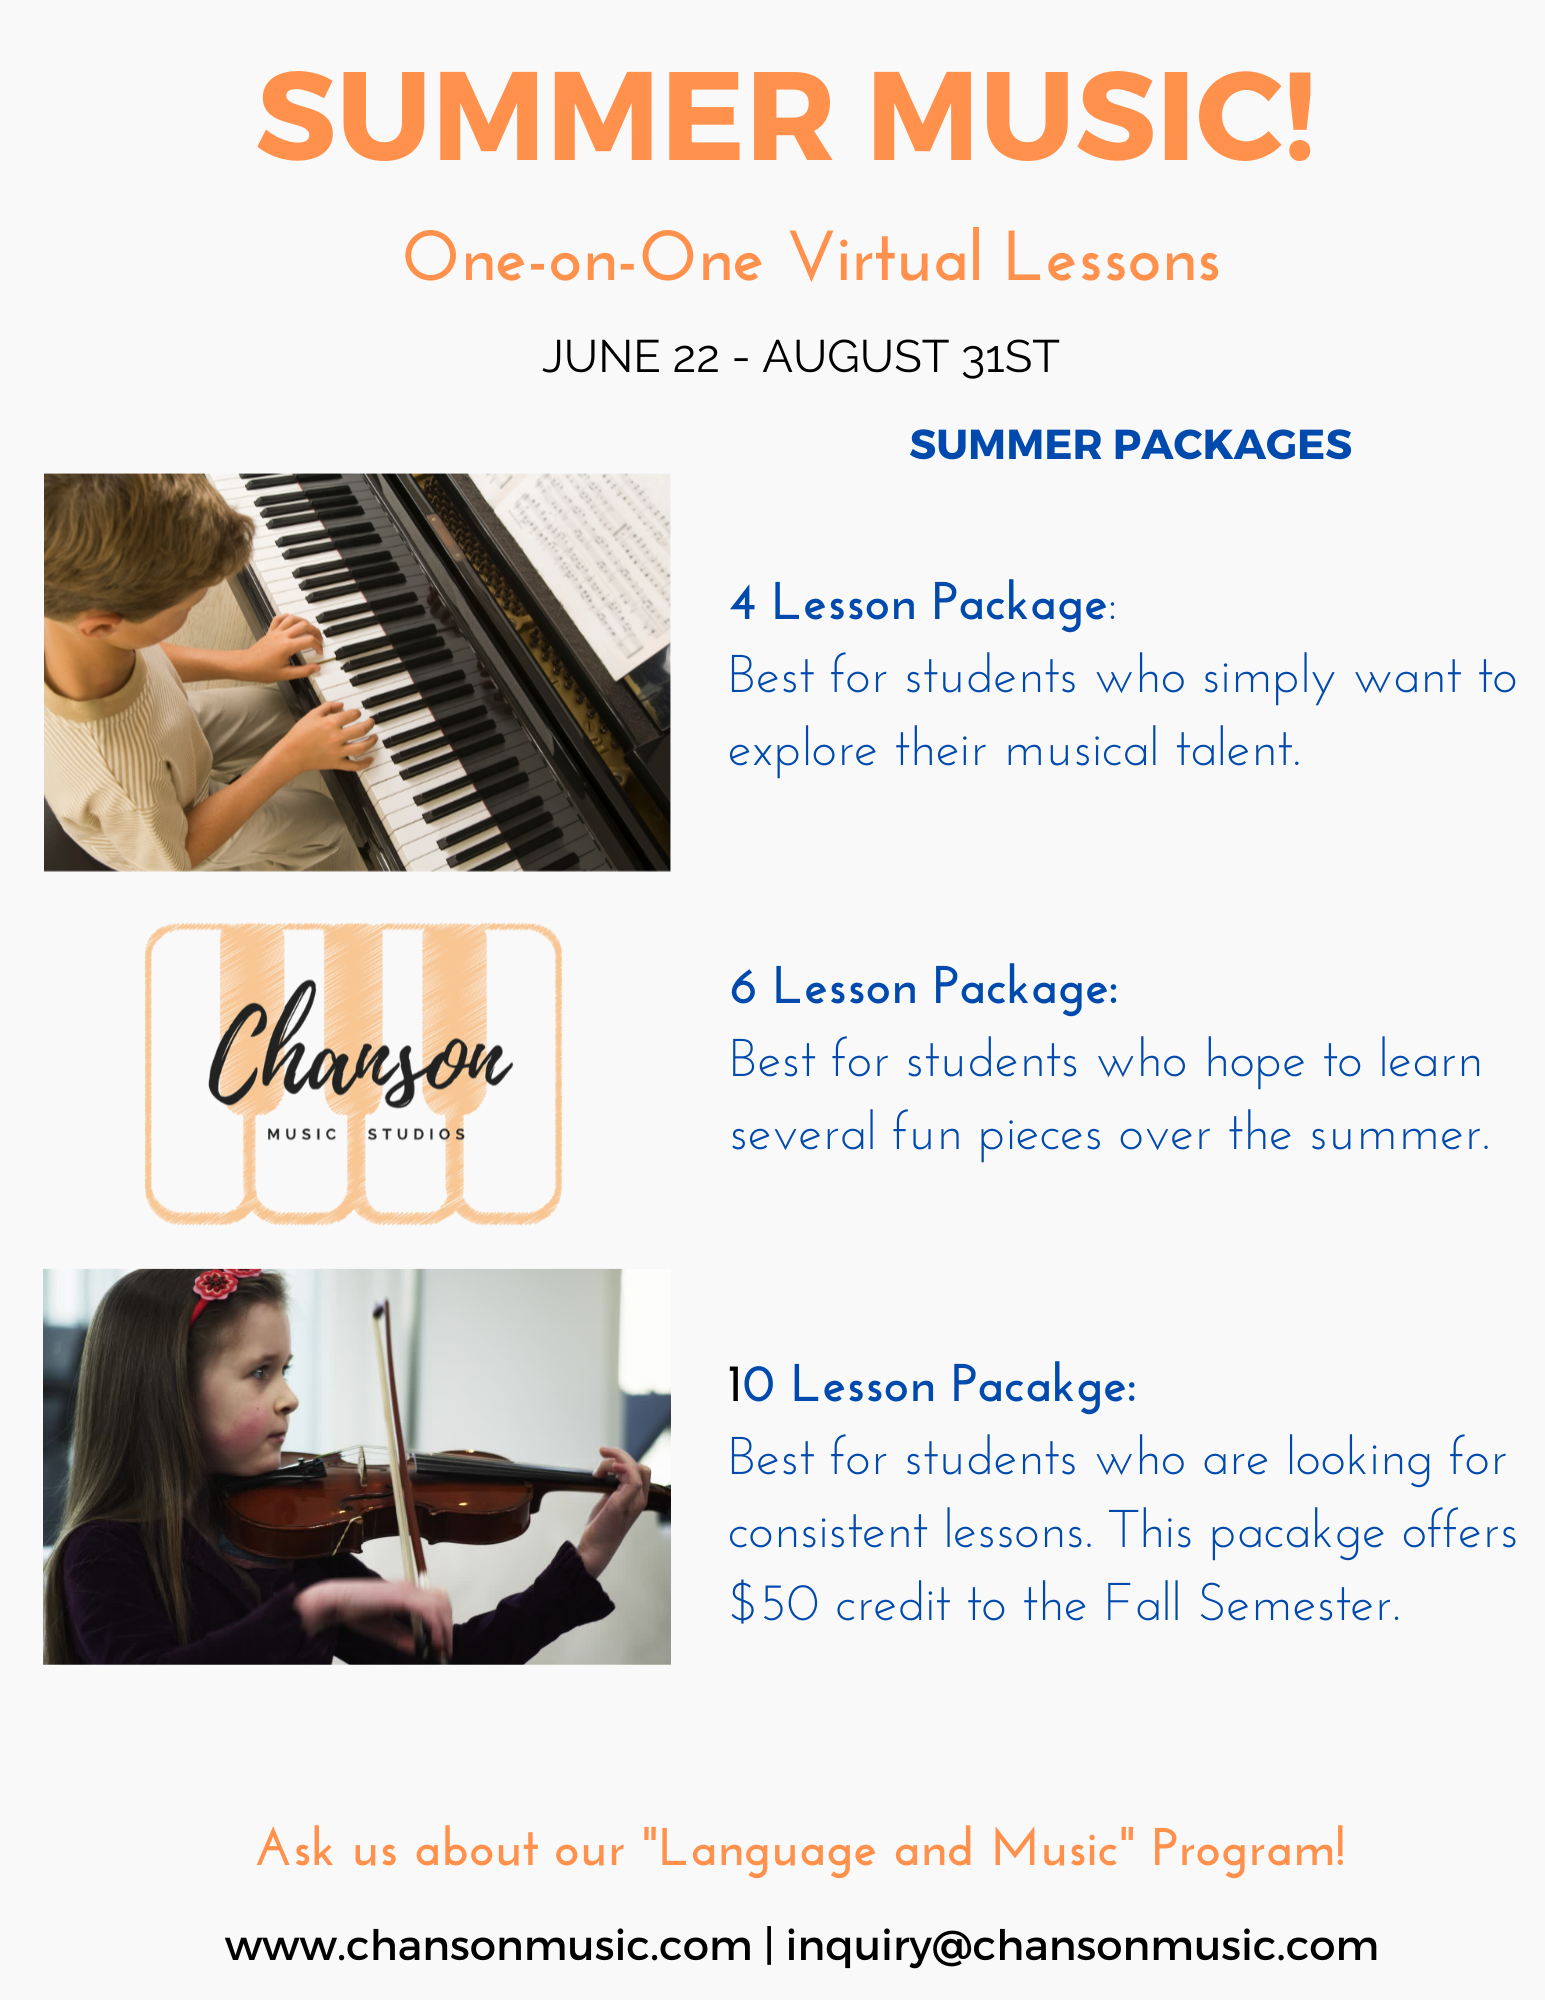 https://www.chansonmusic.com/summer-session